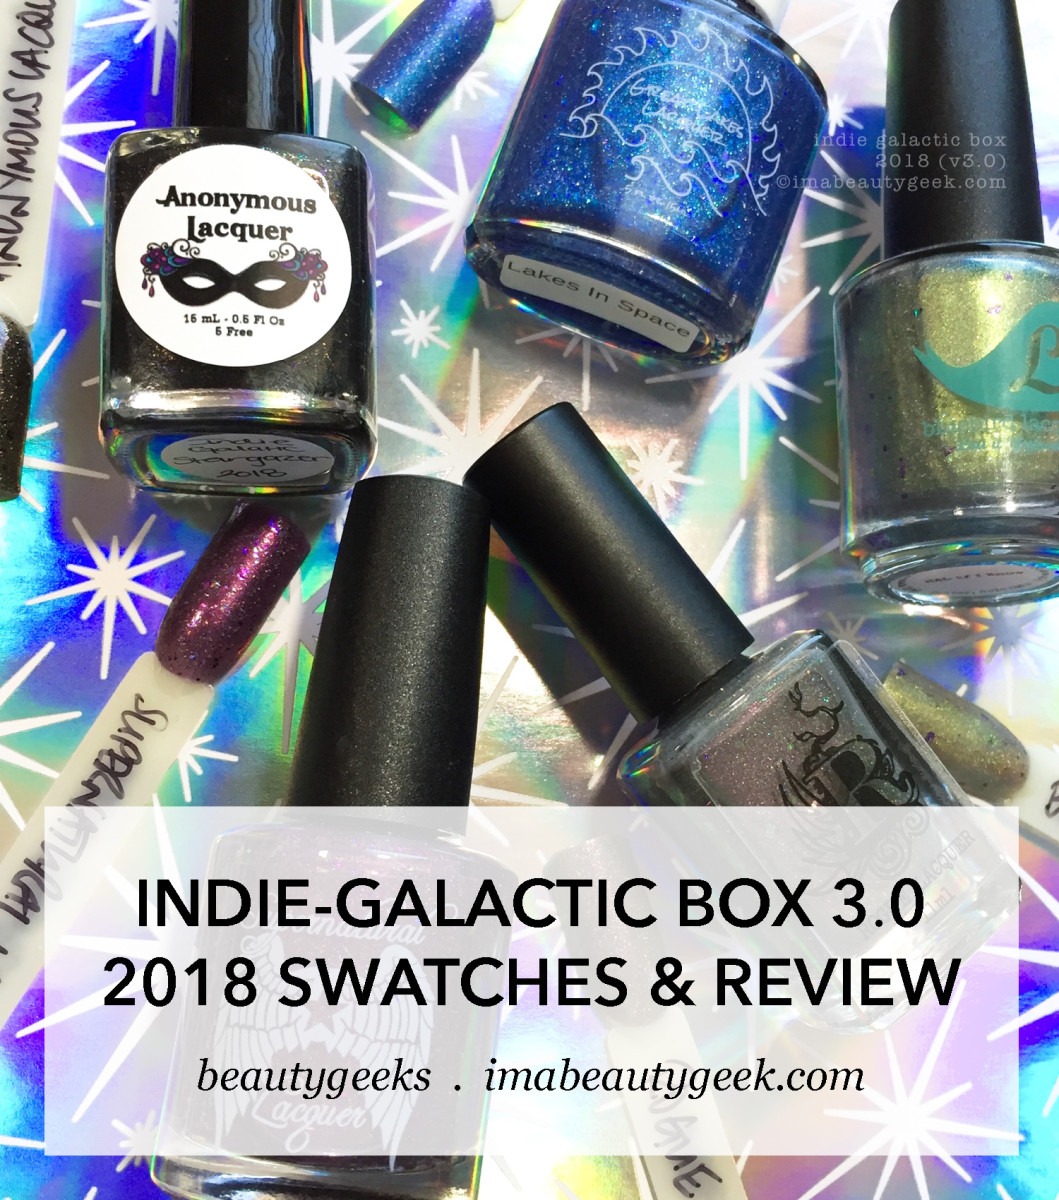 Indie Galactic Box 2018 v3 Swatches Review (1)